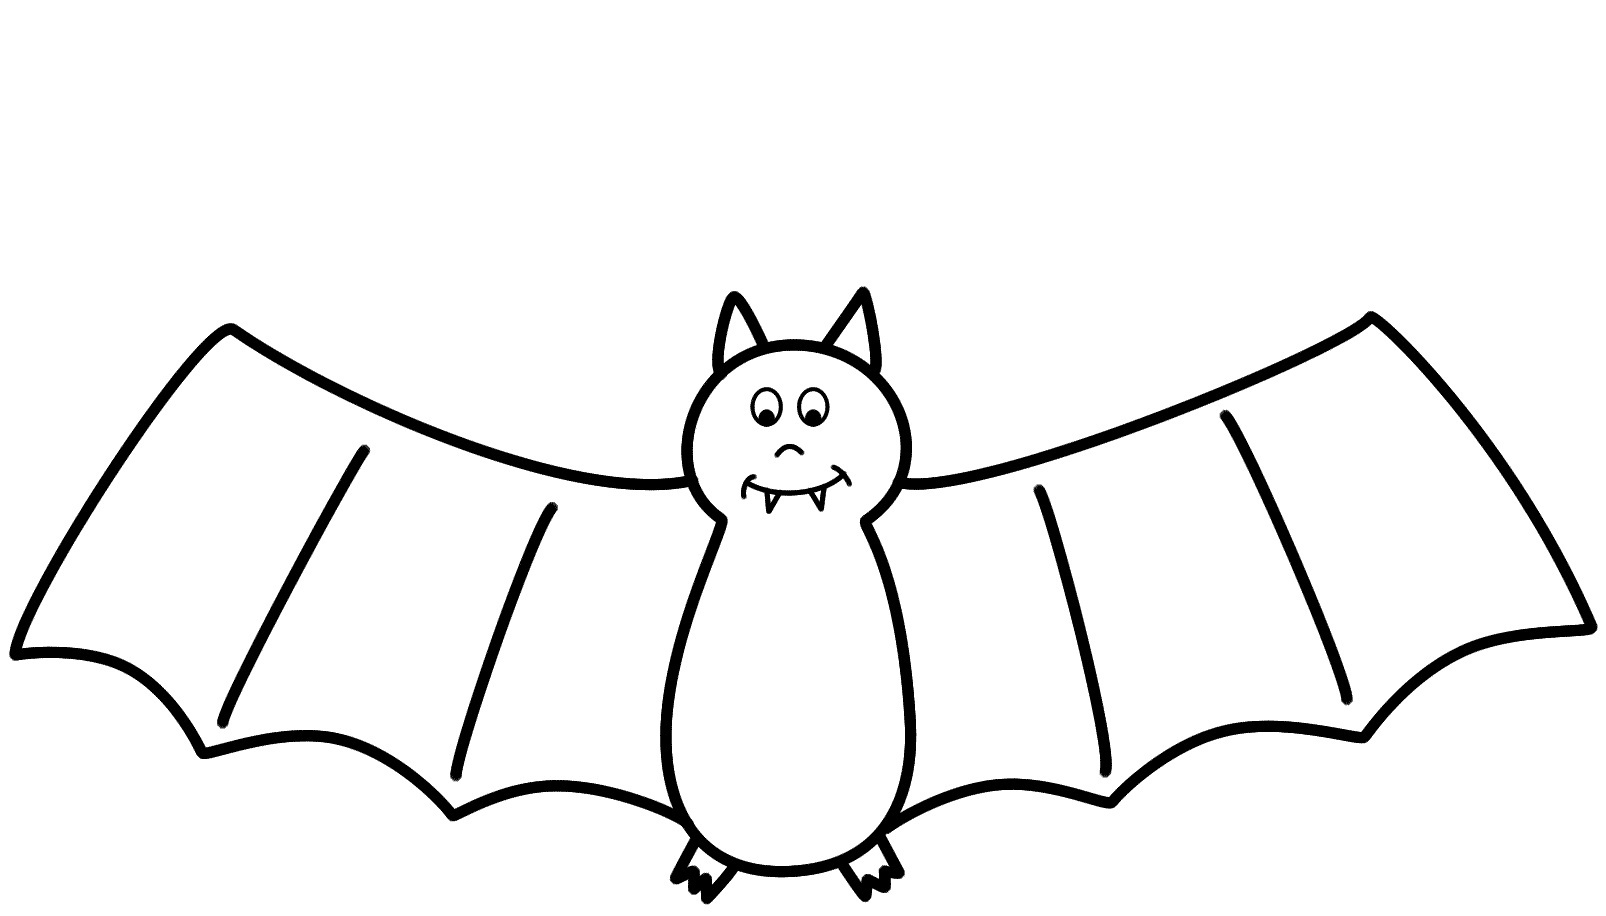 outline bat halloween hand drawn svg vectors and icons svg repo free bat outline